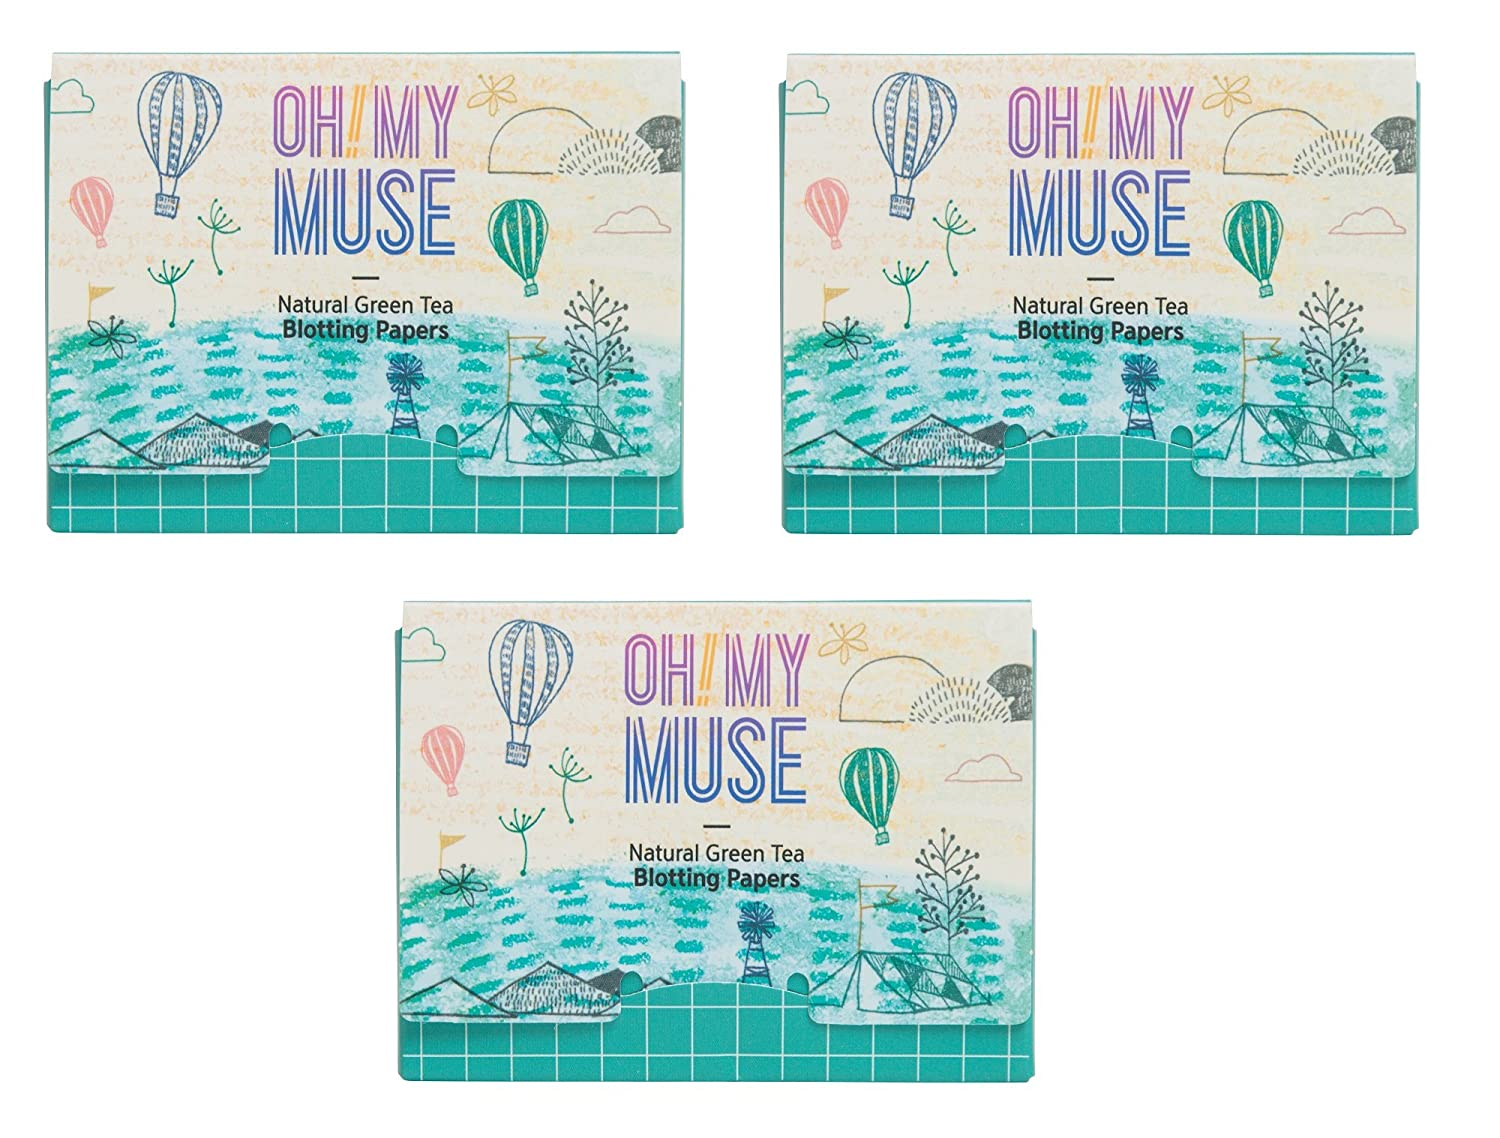 [Oh!My Muse] Natural Green Tea Oil Absorbing Sheets, Blotting Paper, 50 count (1 Pack) Ohmymuse OEM